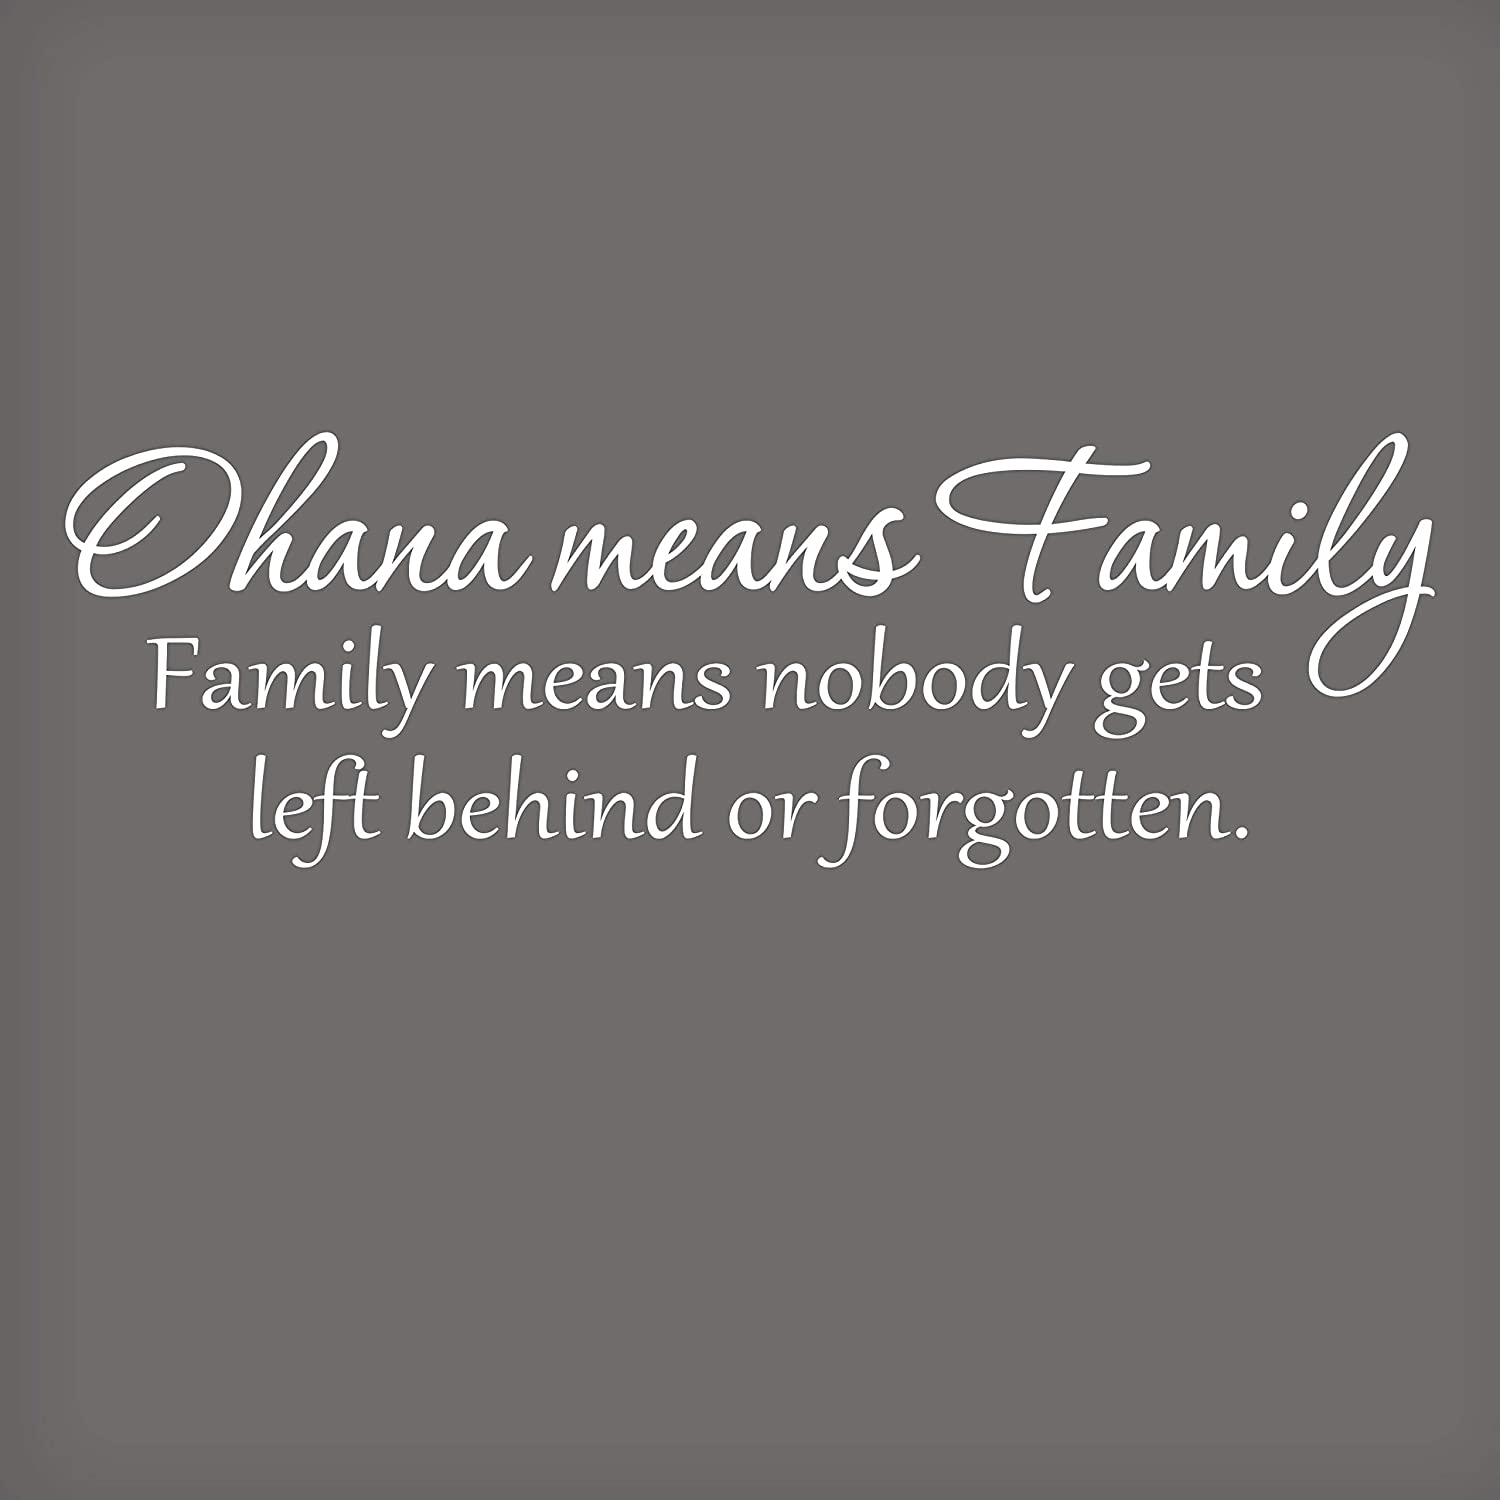 Ohana Means Family Wall Decal | Lilo and Stitch Wall Quotes | Disney Quotes Wall Decor | Kids Wall Decor | Bedroom Decor | 22x6-White